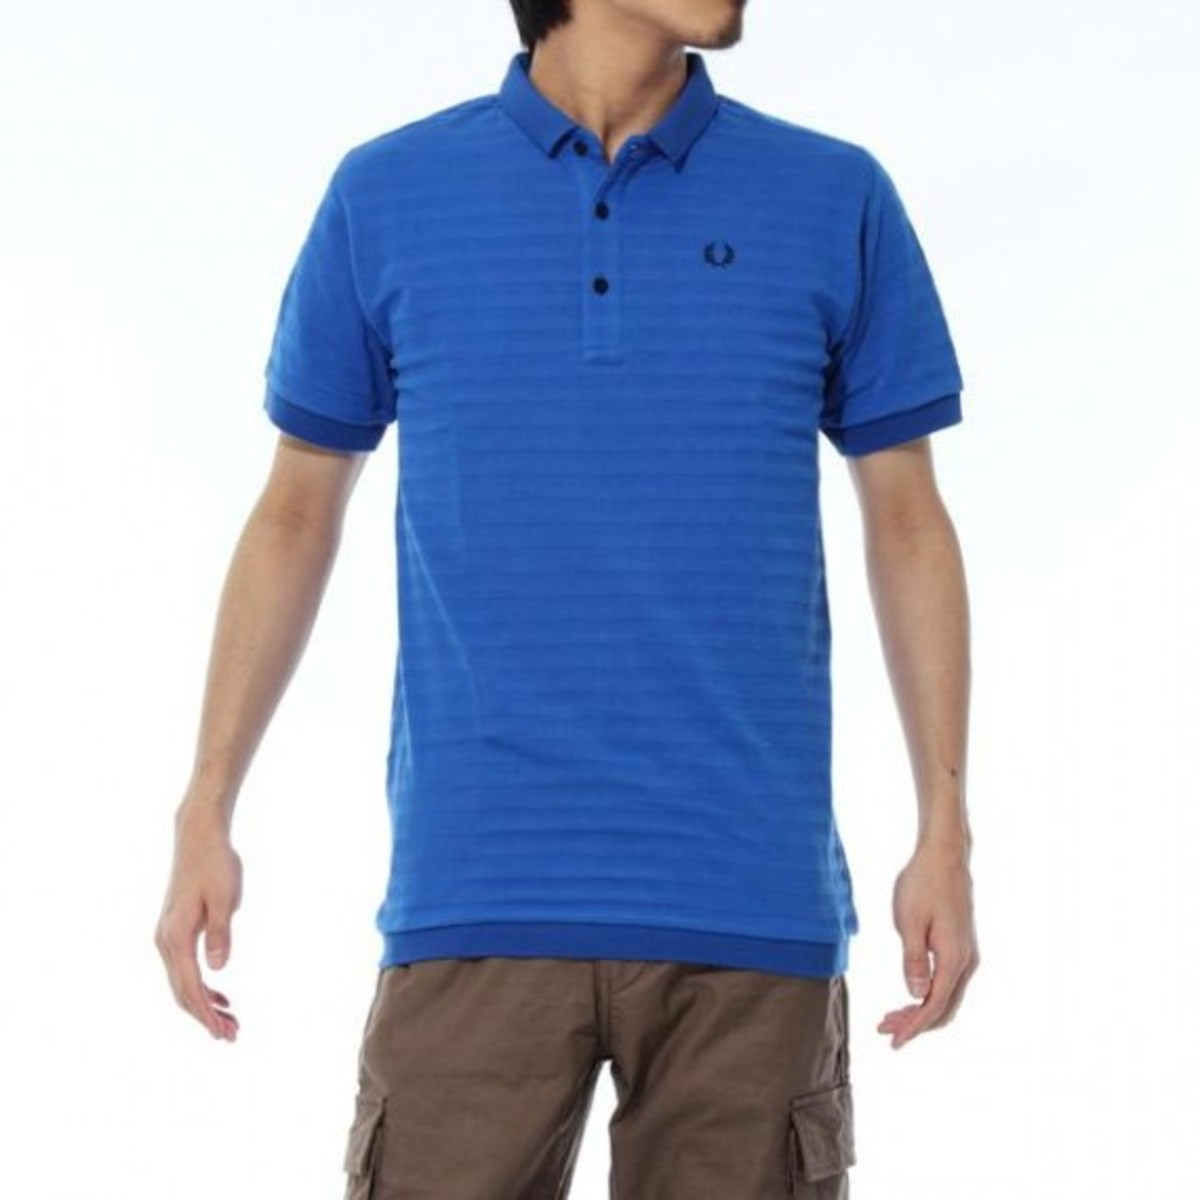 border-polo-shirt-03